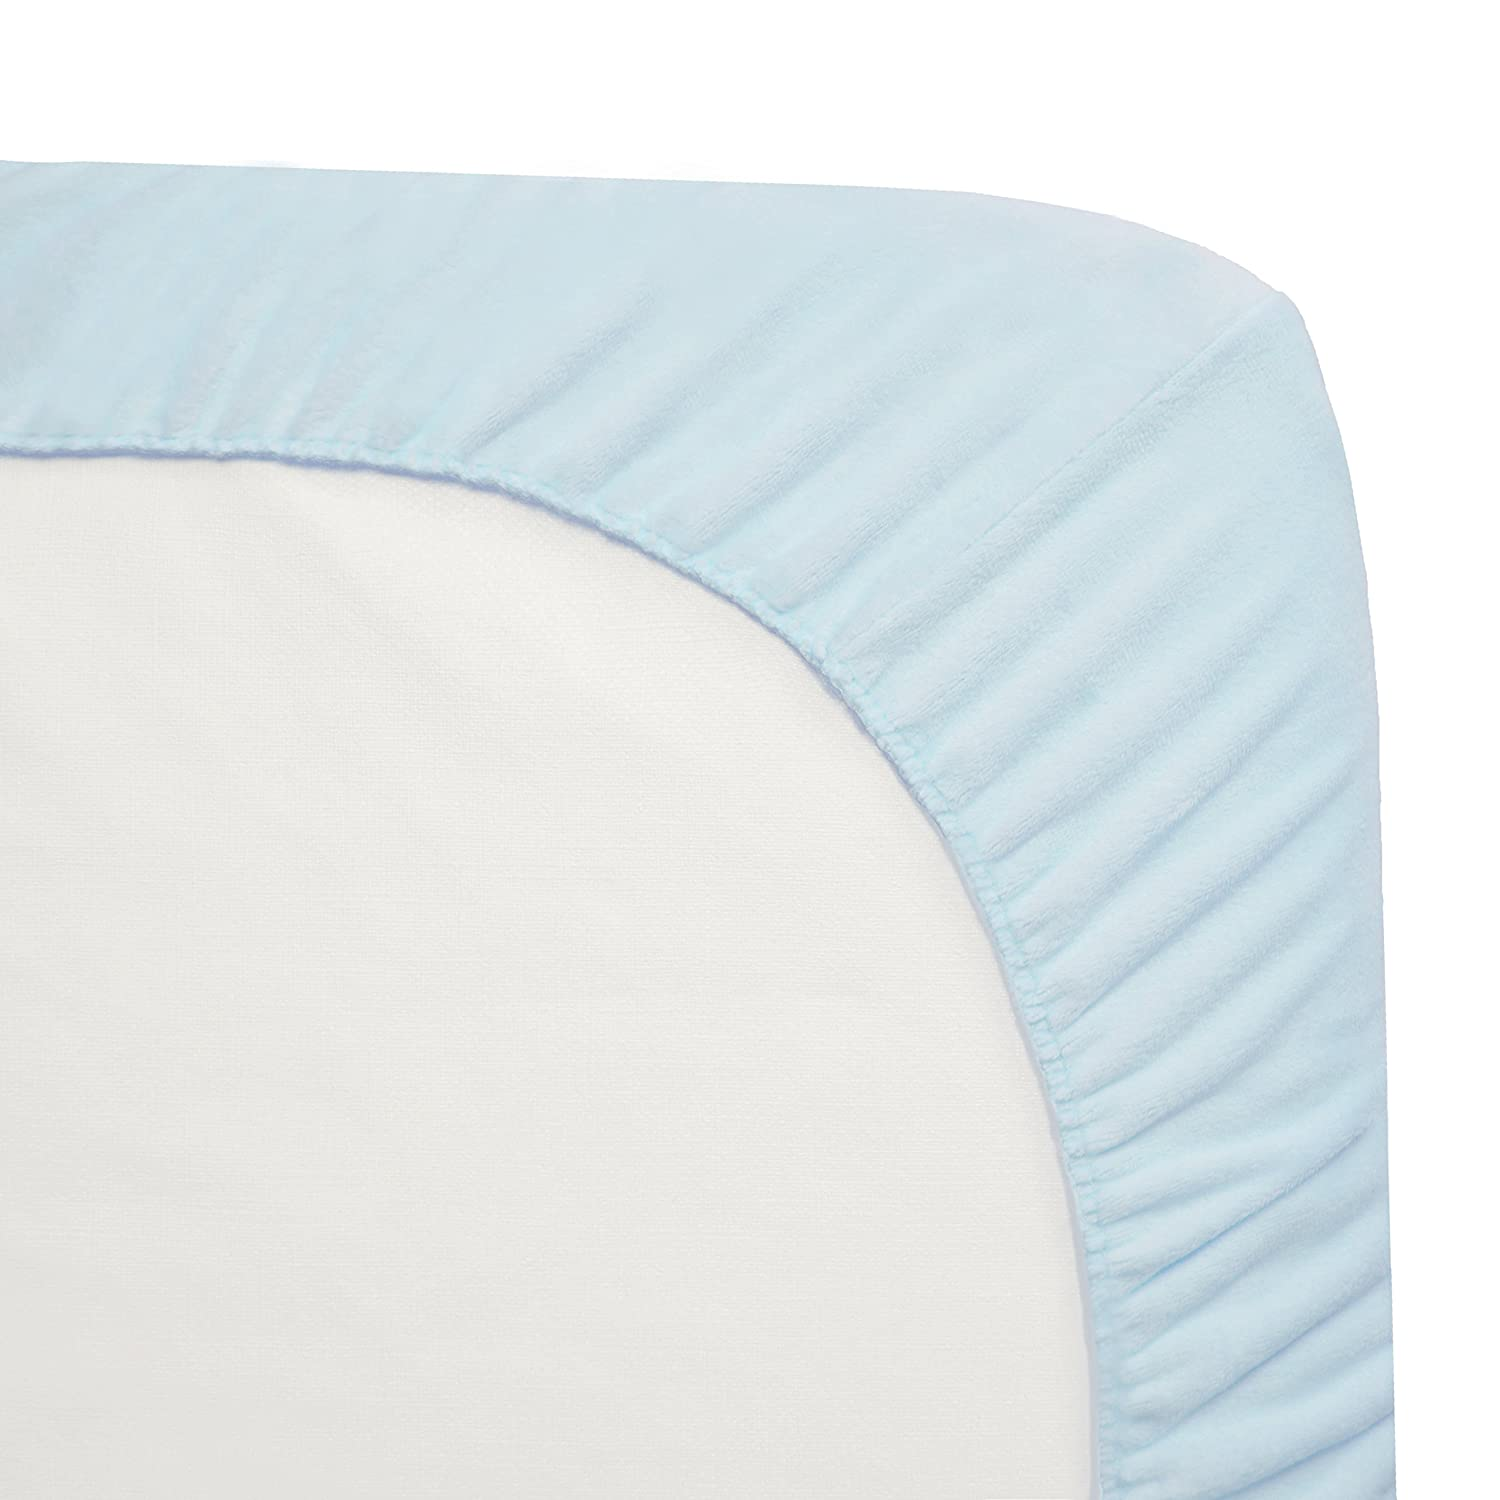 for Boys and Girls American Baby Company Fitted Portable//Mini-Crib Sheet,Heavenly Soft Chenille,White